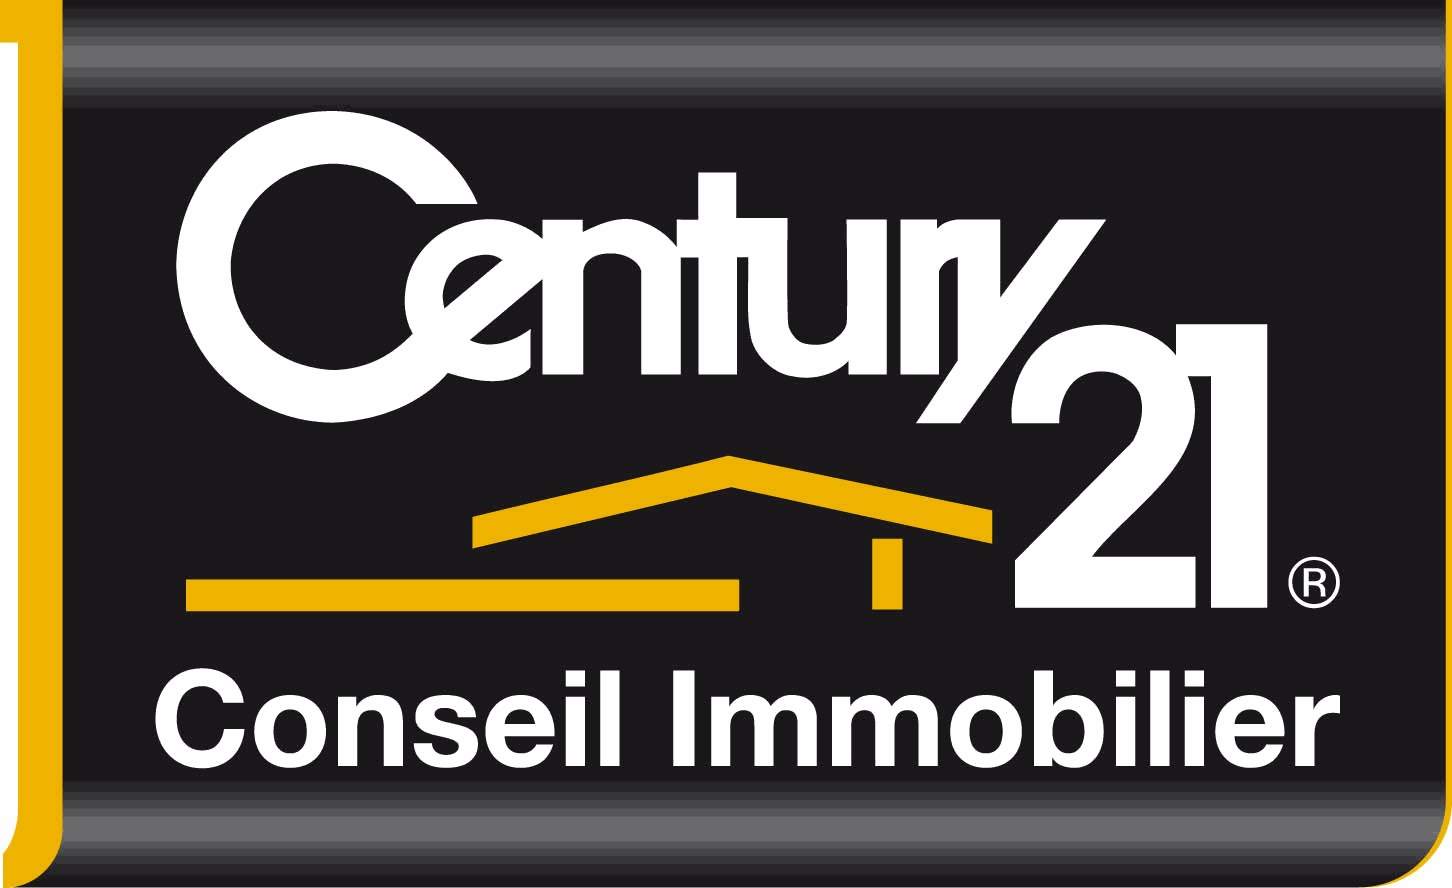 Century 21 conseil immobilier agence immobili re for Immobilier conseil